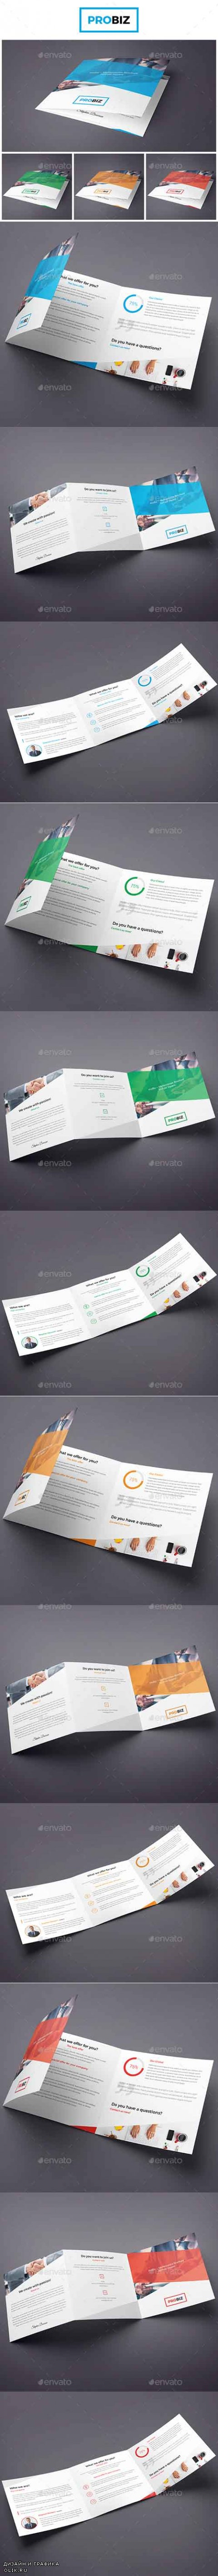 ProBiz – Business and Corporate Brochure Tri-Fold Square 19003034